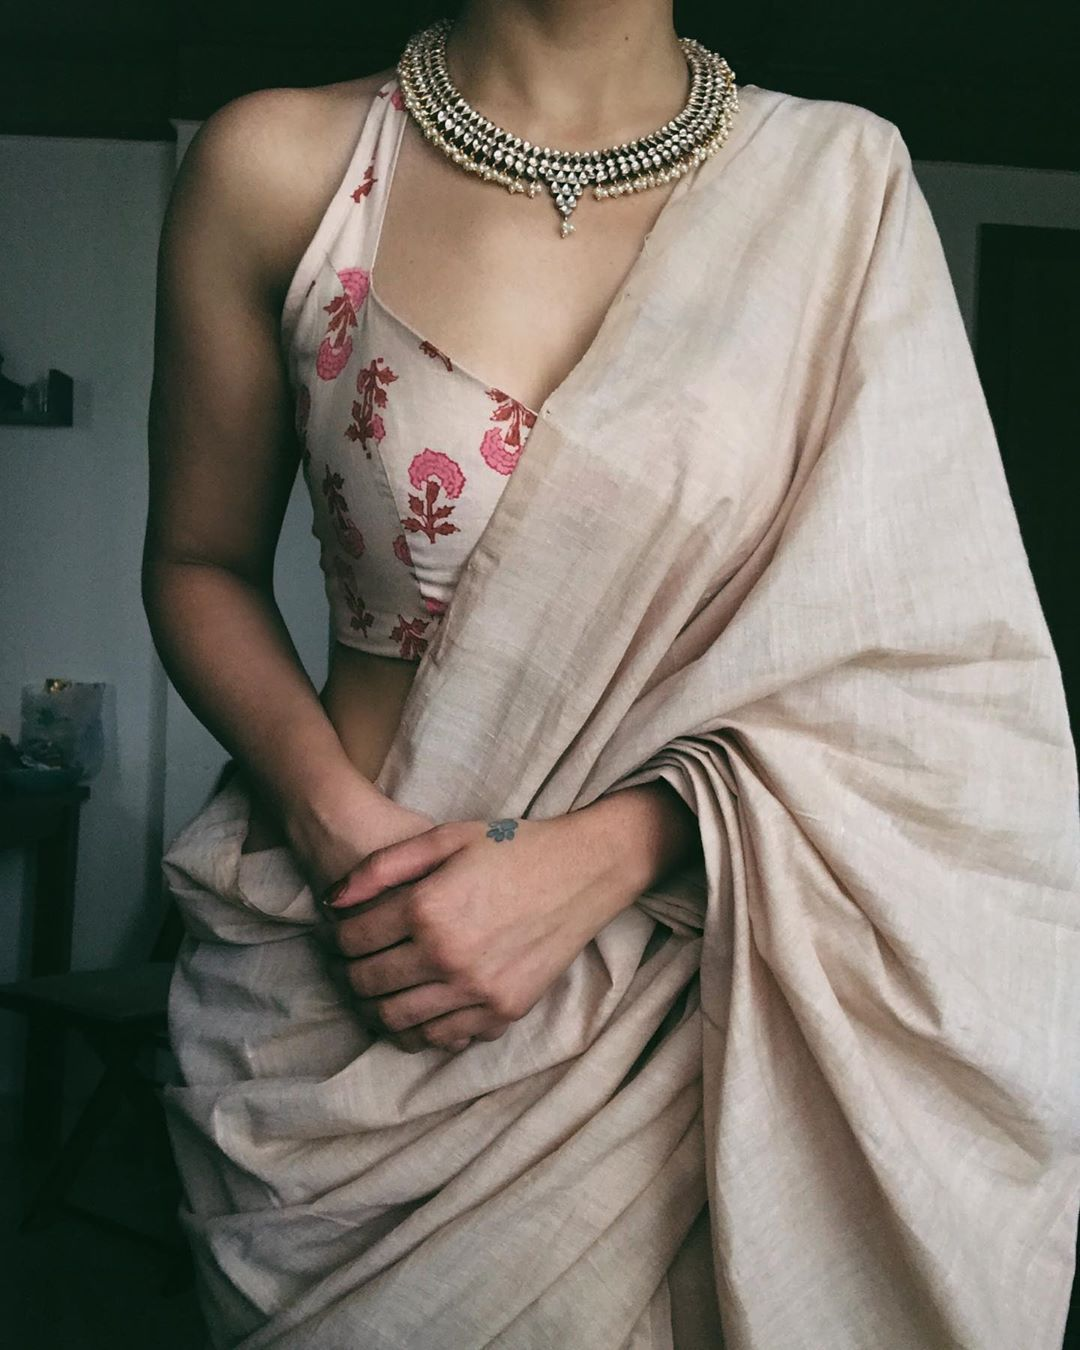 Silver Jewellery & Saree : How To Rock This Combin